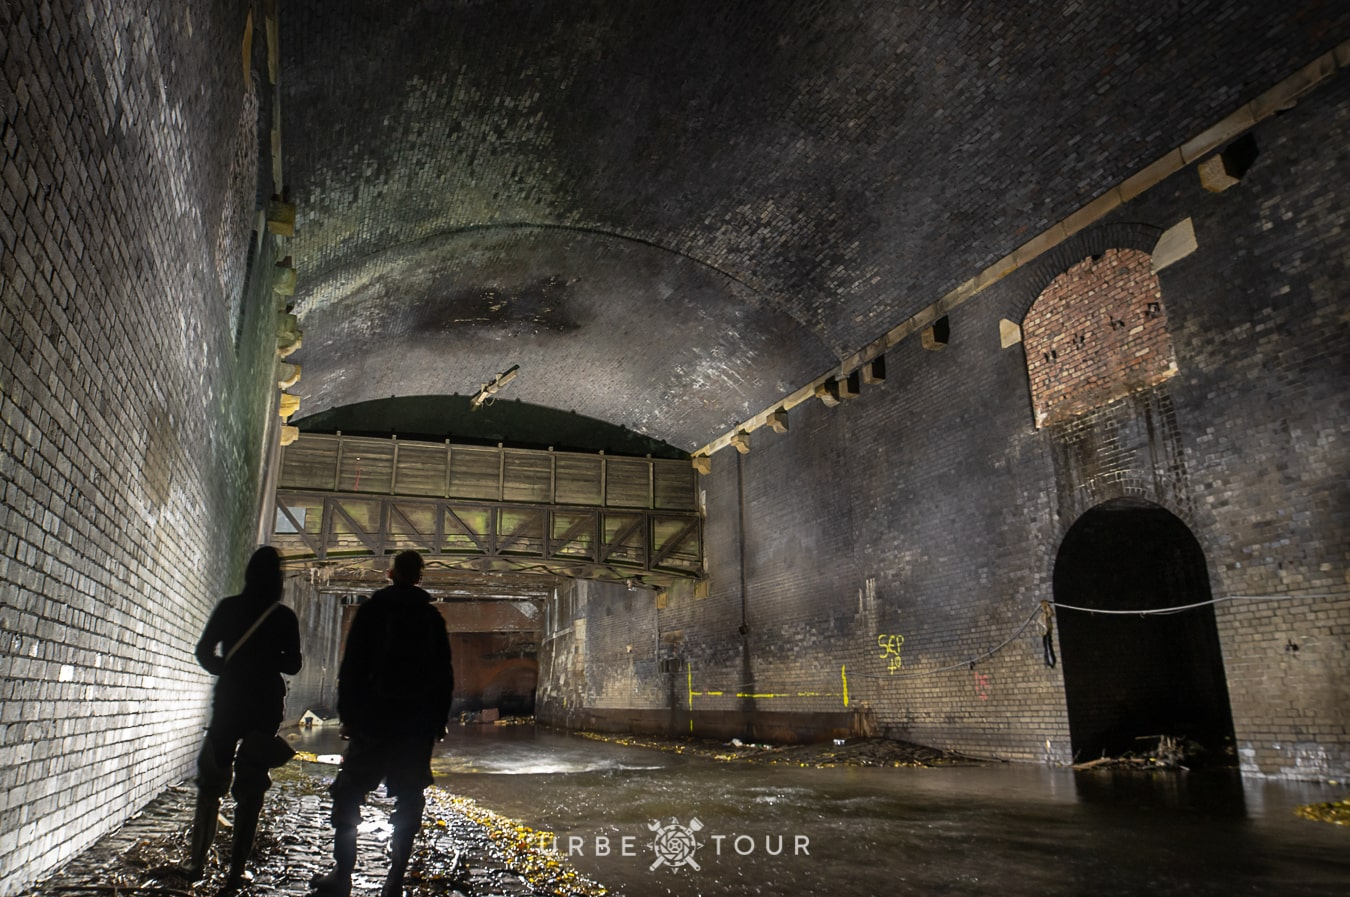 tunnel tour underground river manchester